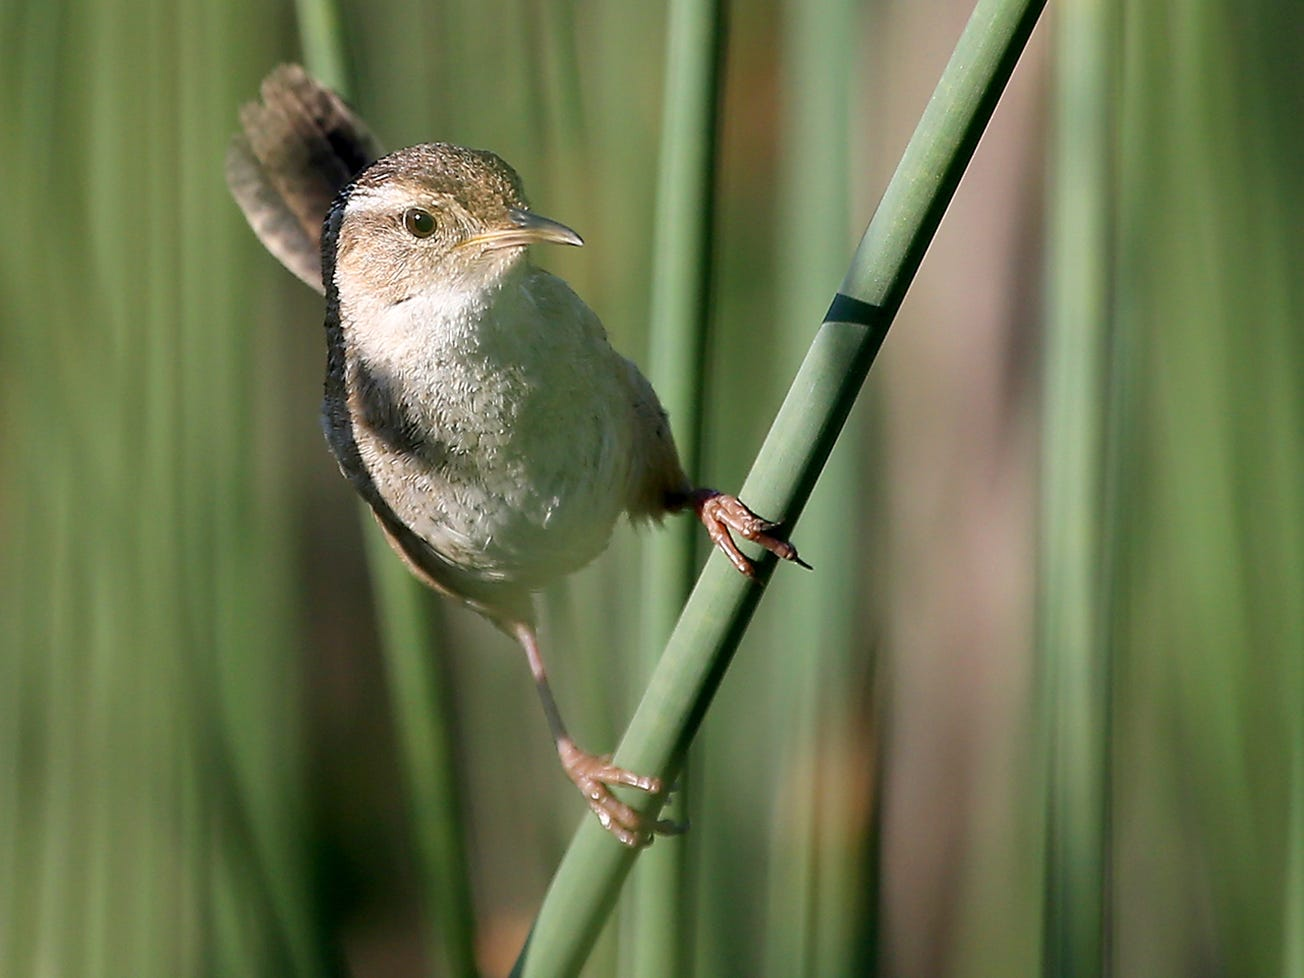 A marsh wren clings to the reeds at Theler Wetlands in Belfair, Washington on Saturday, June 2, 2018.